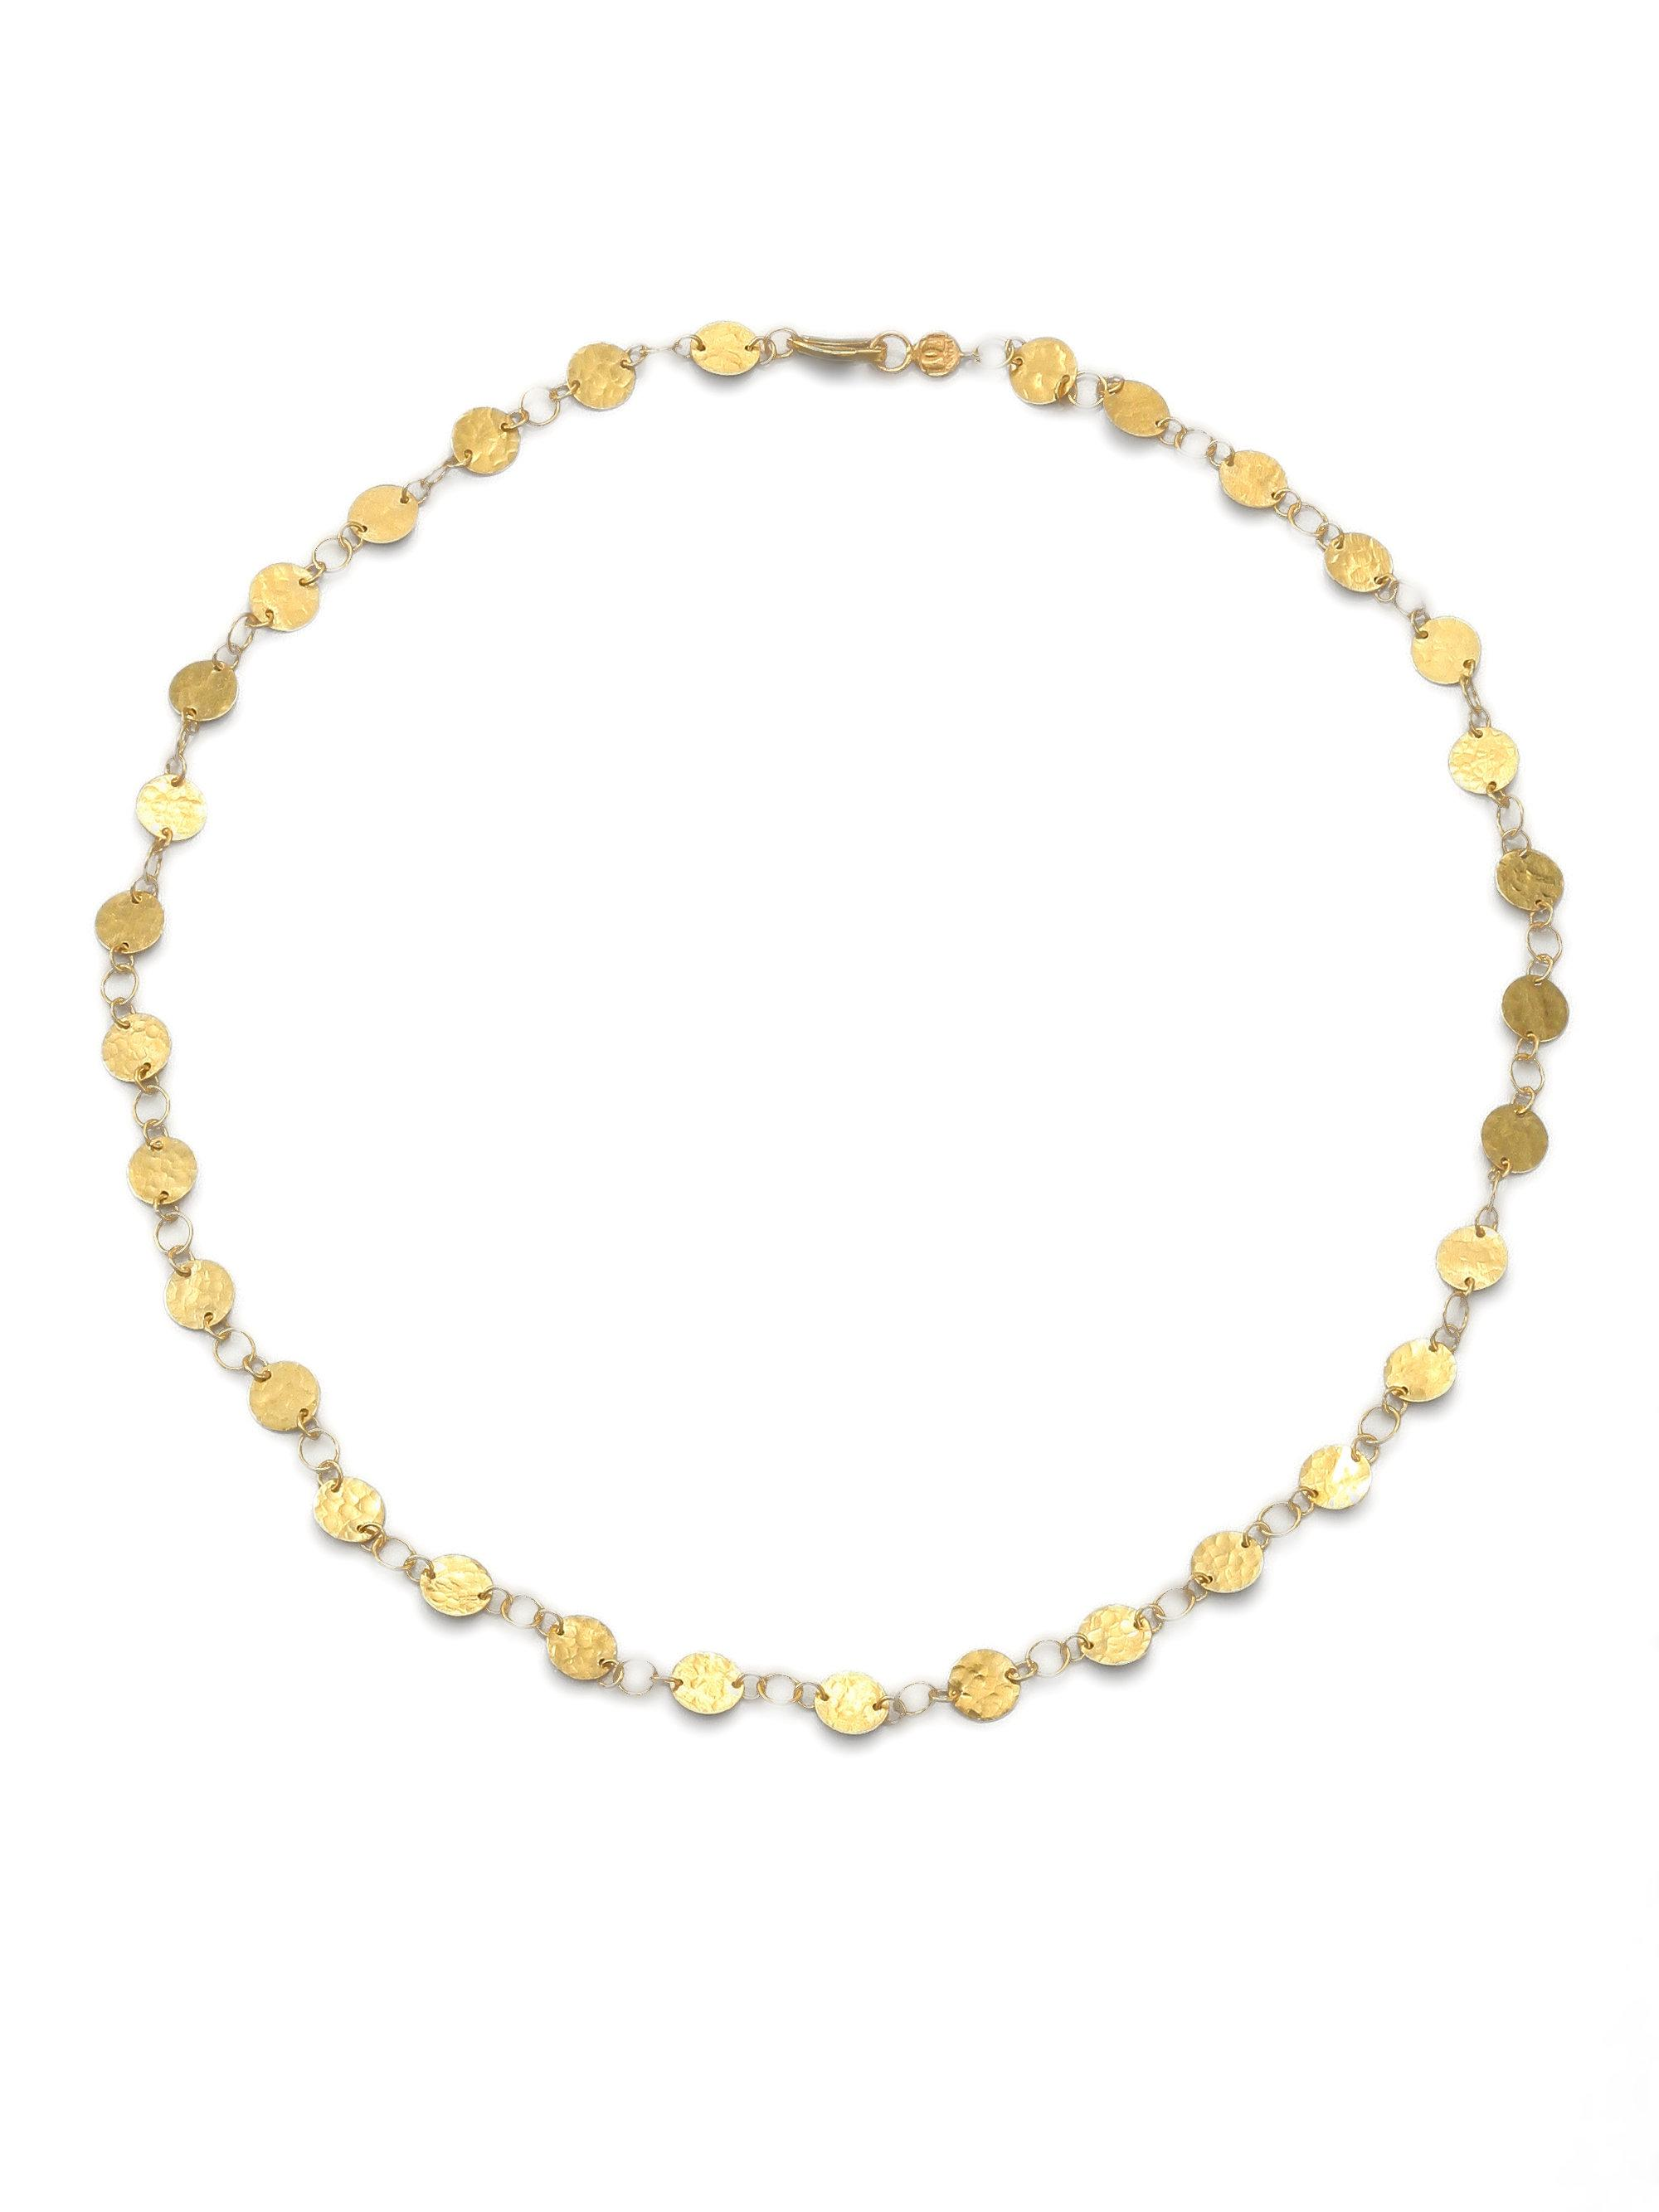 Gurhan 24k Lush Mixed Flake Chain Bracelet